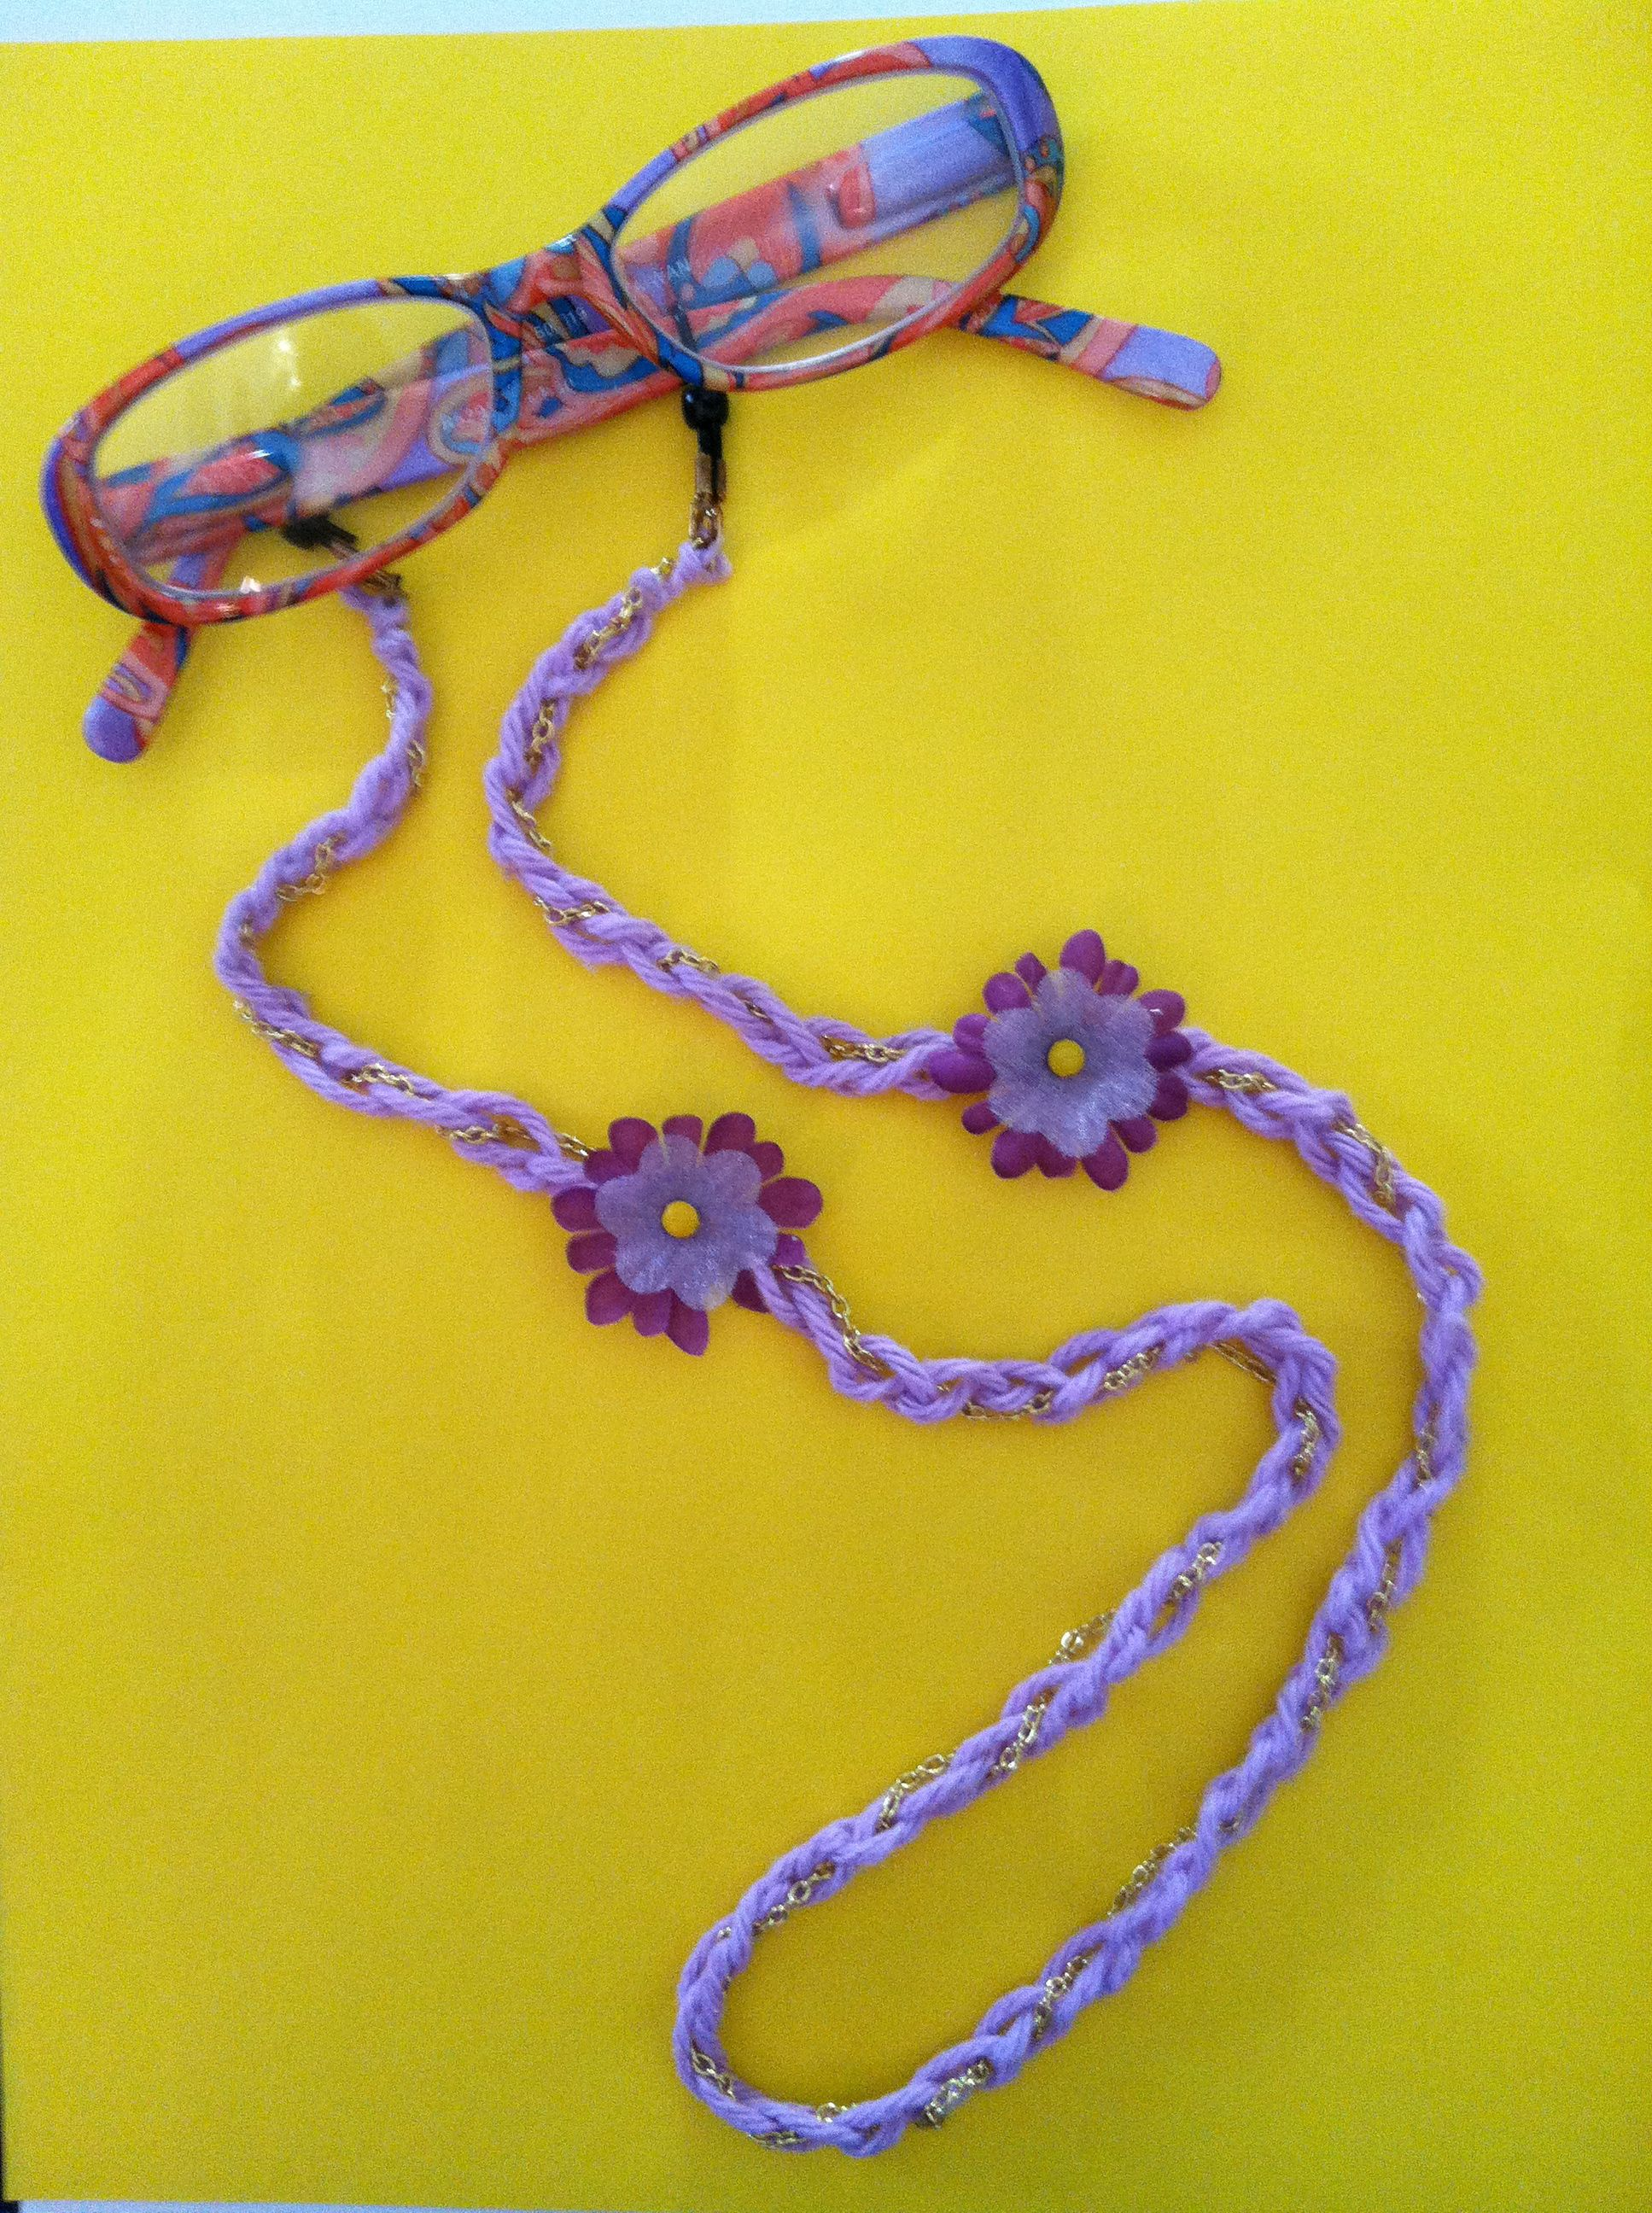 Single crochet then run an old necklace chain through it, attach to eyeglass things, pop on some flowers and voila! - no more lost glasses!